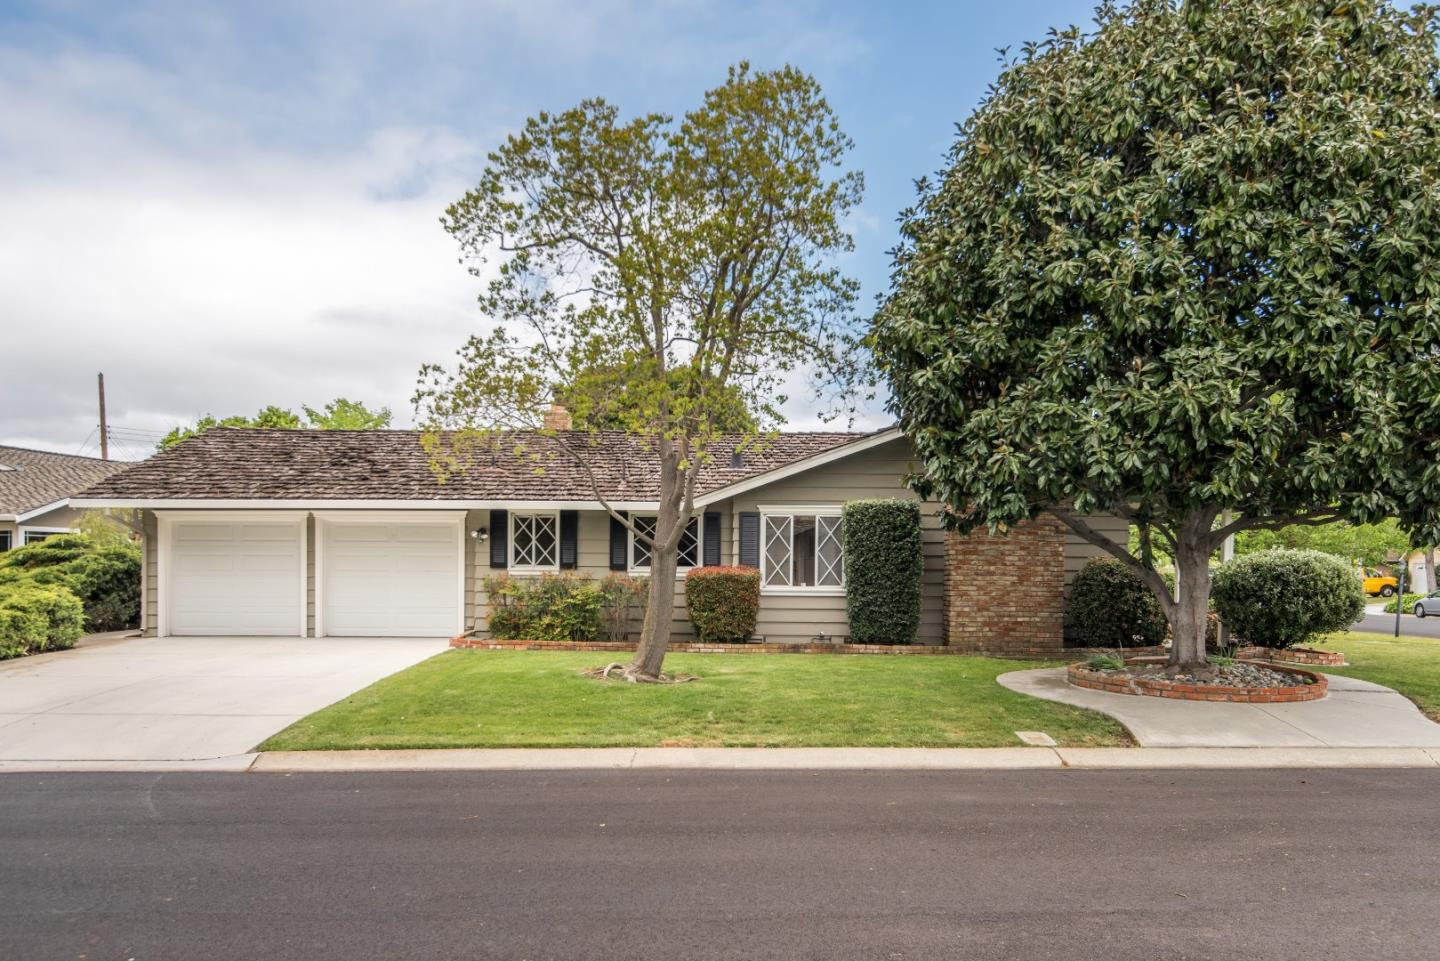 Additional photo for property listing at 12451 Woodside Dr  SARATOGA, CALIFORNIA 95070